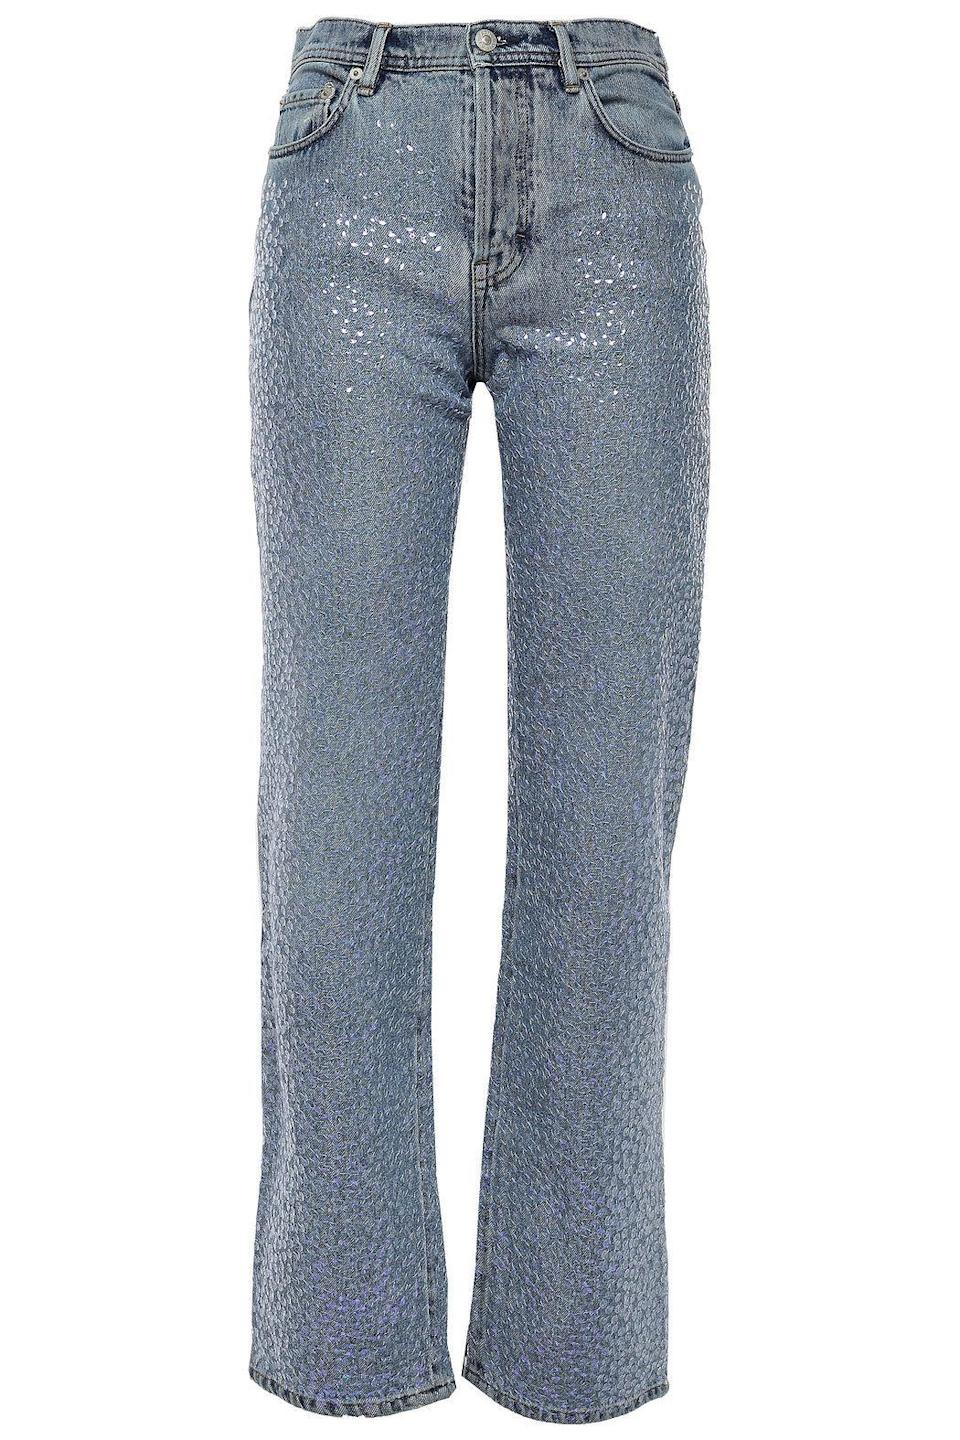 """<p><strong>ACNE STUDIOS</strong></p><p>theoutnet.com</p><p><strong>$500.00</strong></p><p><a href=""""https://go.redirectingat.com?id=74968X1596630&url=https%3A%2F%2Fwww.theoutnet.com%2Fen-us%2Fshop%2Fproduct%2Facne-studios%2Fjeans%2Fstraight-leg-jeans%2Fsequin-embellished-high-rise-straight-leg-jeans%2F4854206262886026&sref=https%3A%2F%2Fwww.elle.com%2Ffashion%2Fshopping%2Fg33595007%2Fthe-outnet-clearance-summer-2020-sale%2F"""" rel=""""nofollow noopener"""" target=""""_blank"""" data-ylk=""""slk:Shop Now"""" class=""""link rapid-noclick-resp"""">Shop Now</a></p>"""